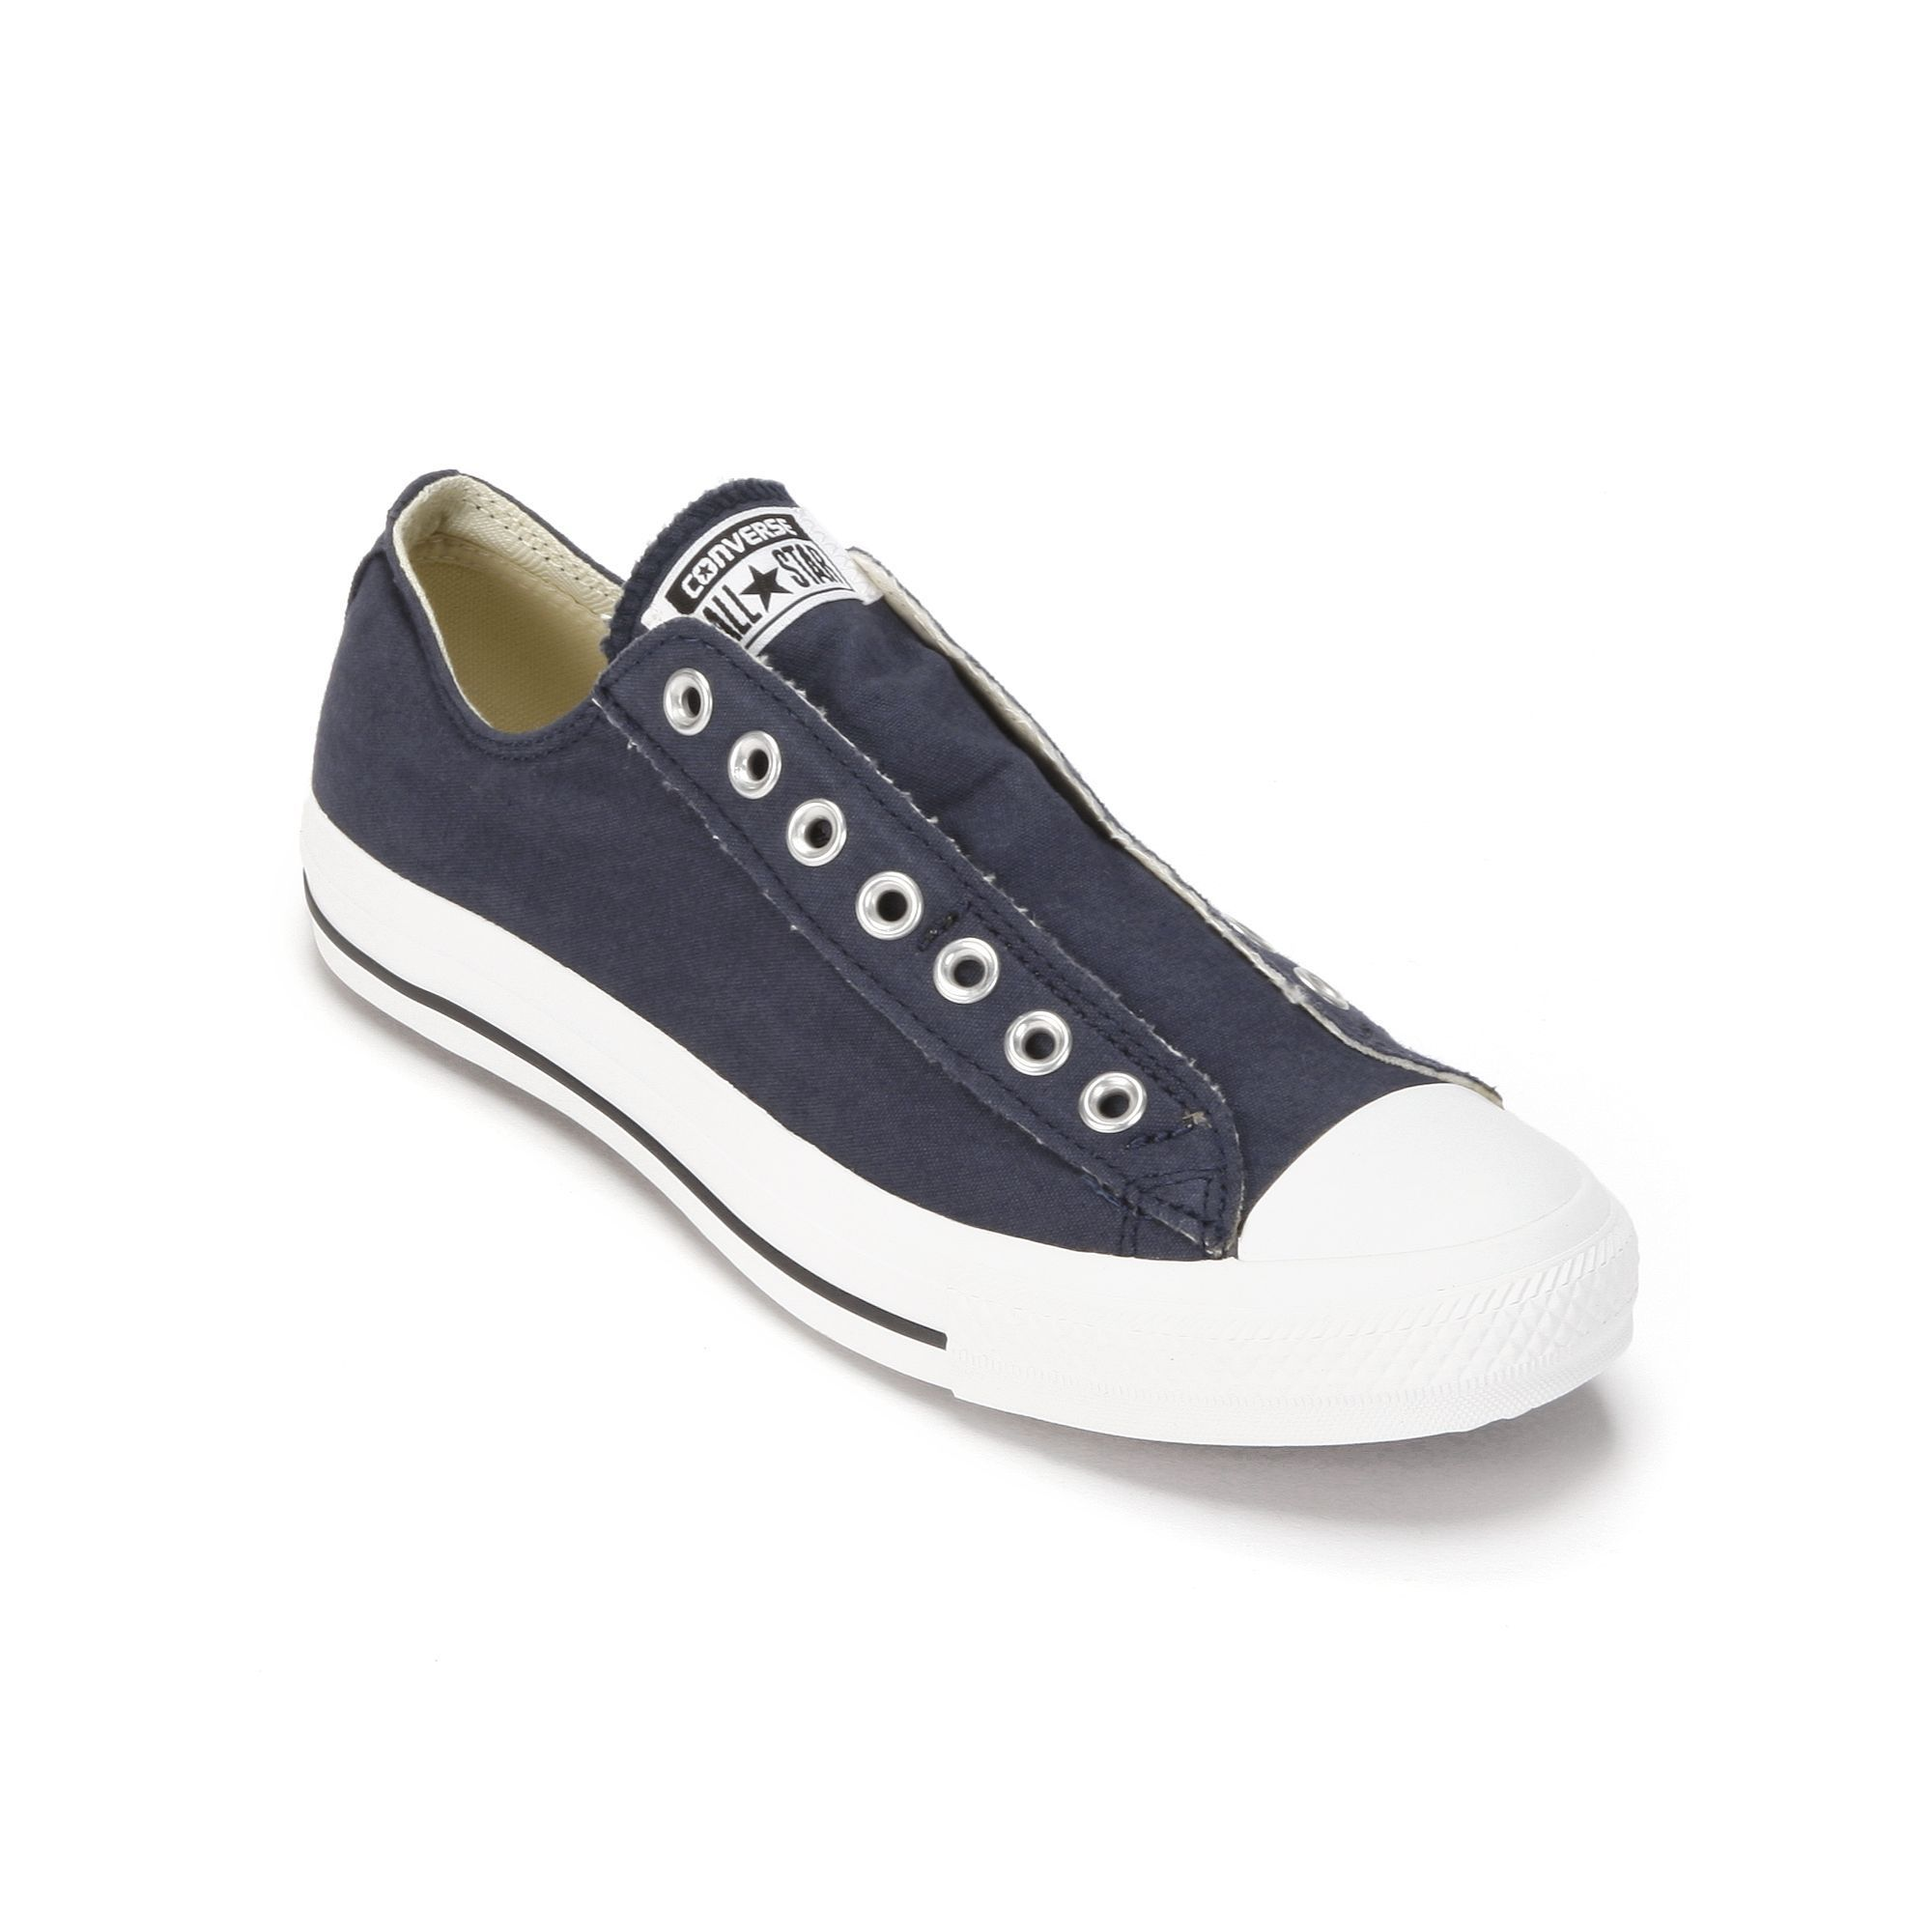 5811d80a0d7e Navy slip on converse. Adult Converse All Star Laceless Sneakers